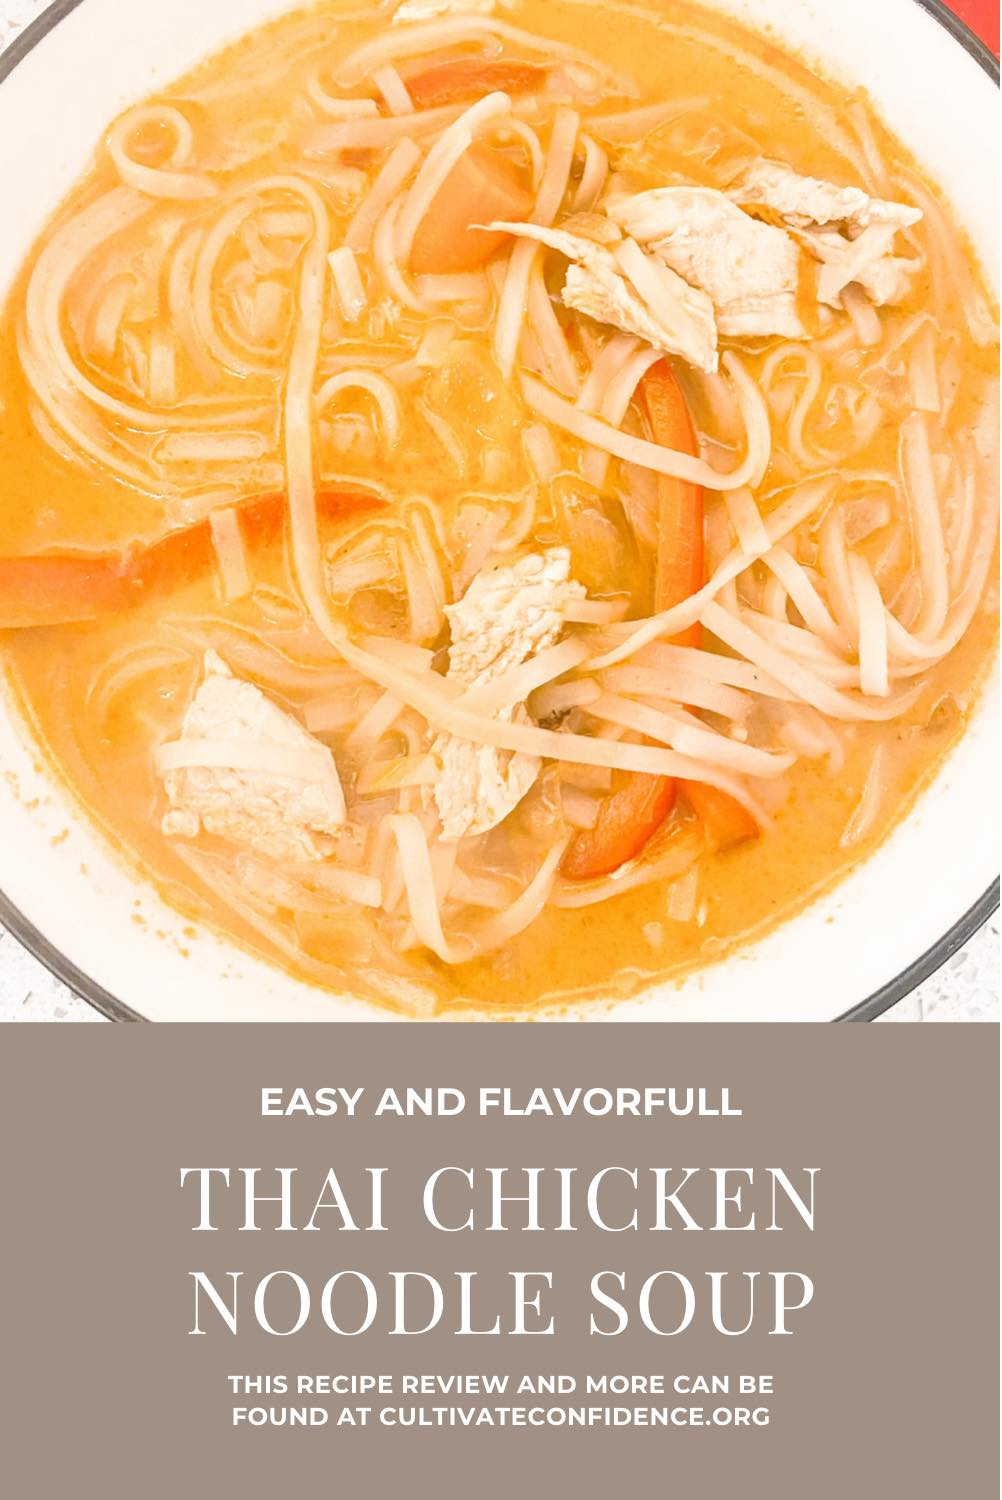 How to Make Thai Chicken Noodle Soup